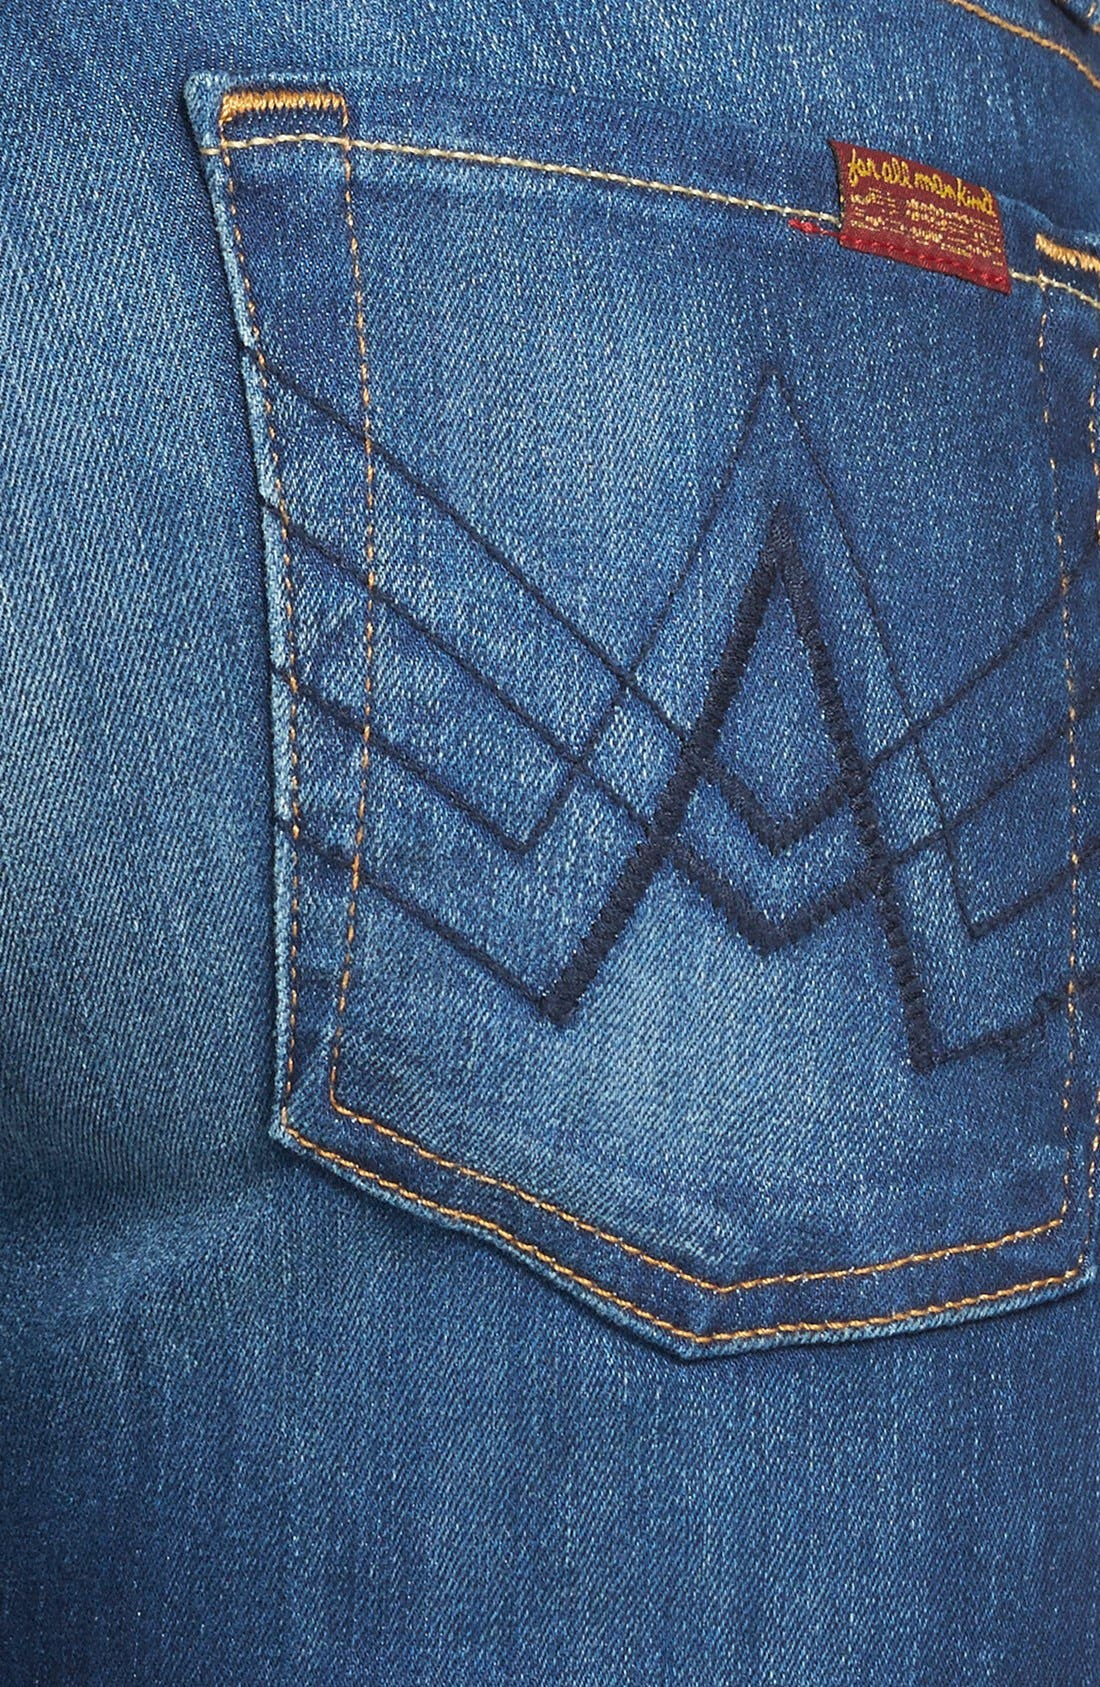 Alternate Image 3  - 7 For All Mankind® 'Lexie' Bootcut Stretch Jeans (Aggressive Siren) (Petite)